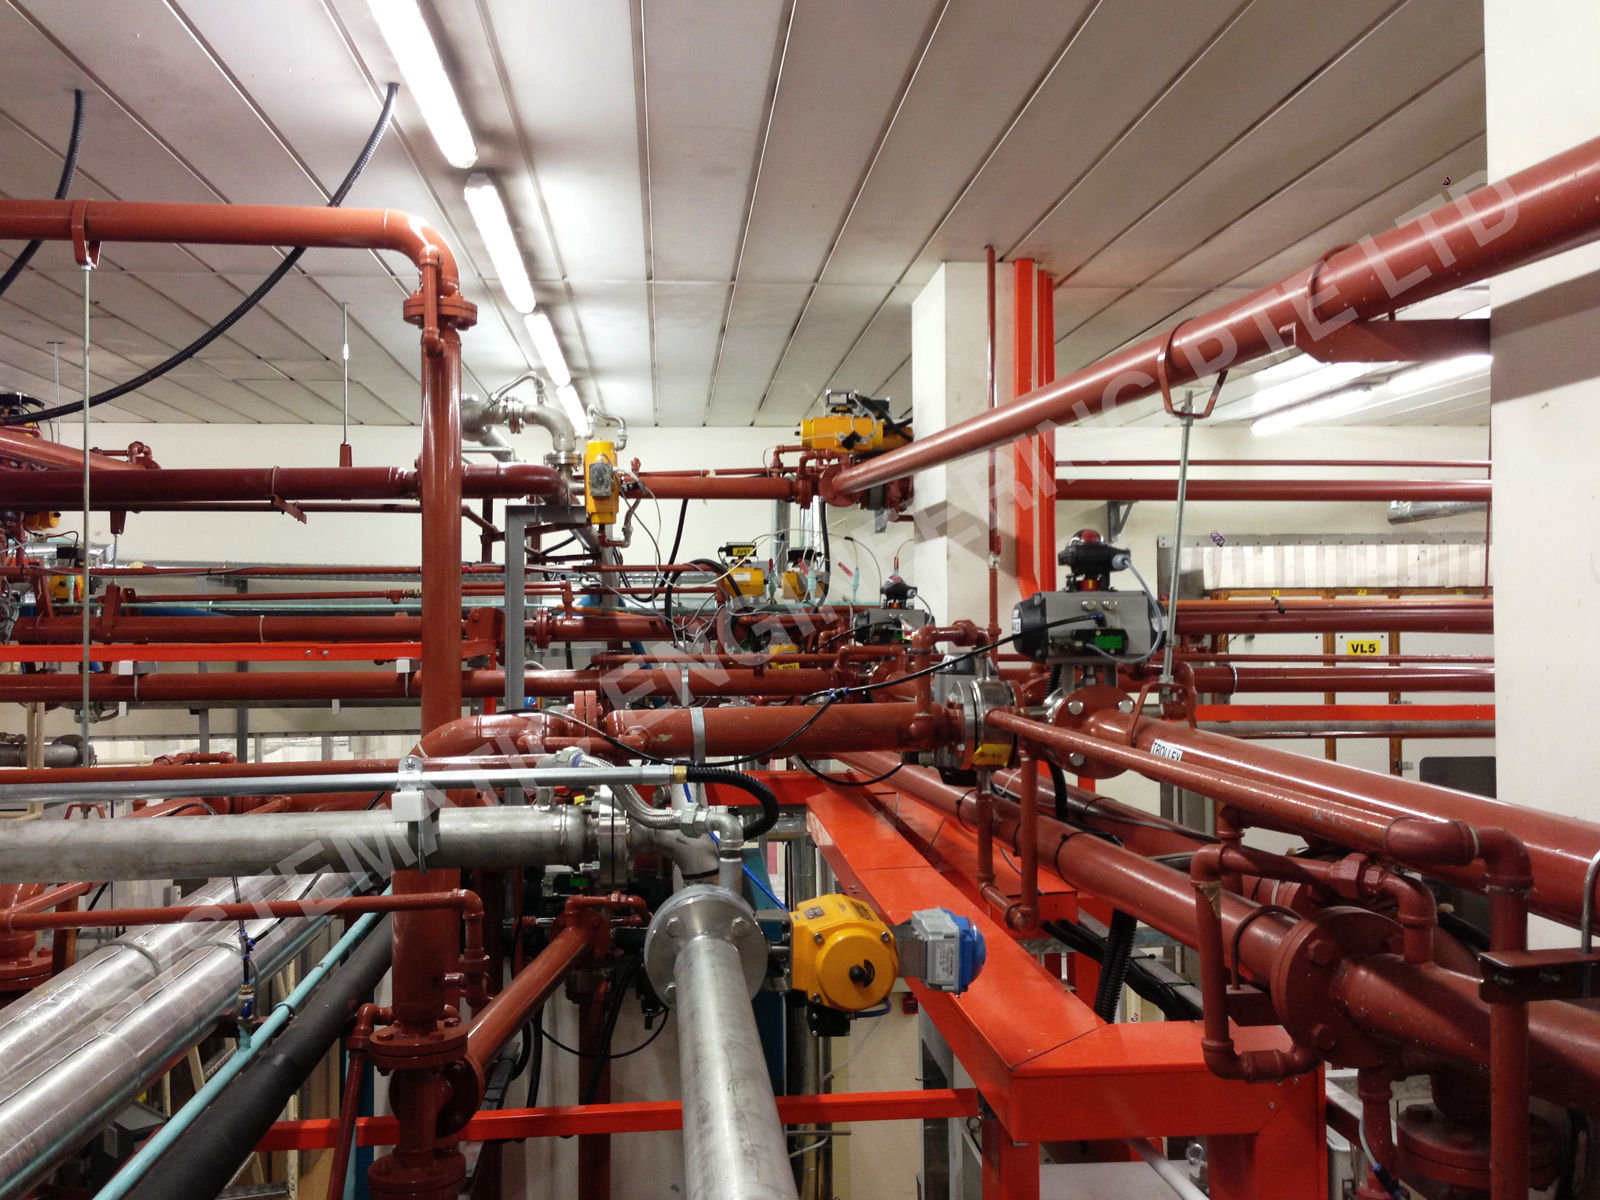 Food Plant Jacketed Piping Works 1